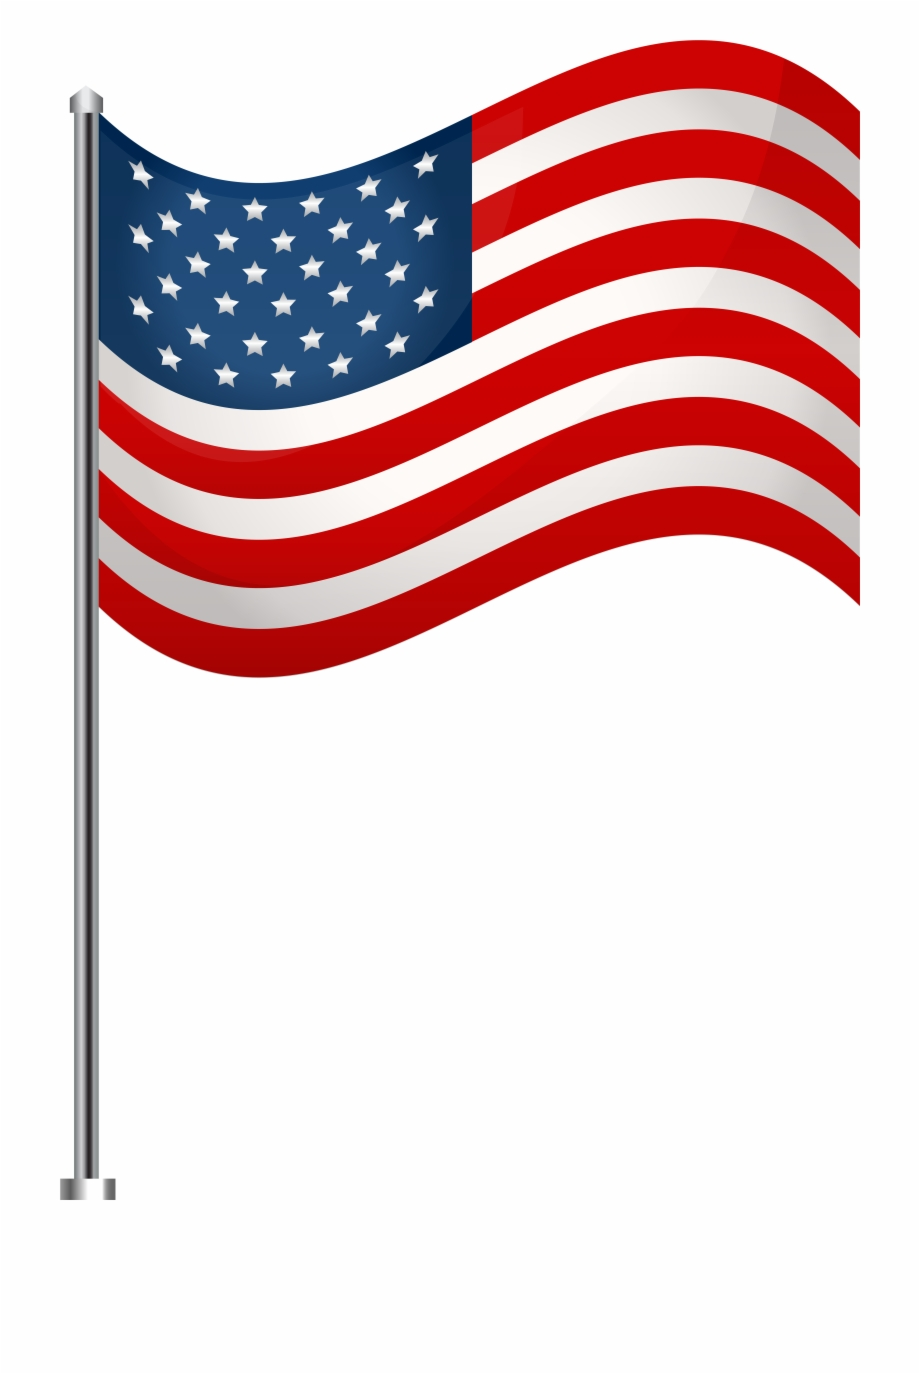 Free American Flag Clipart Transparent Background, Download.